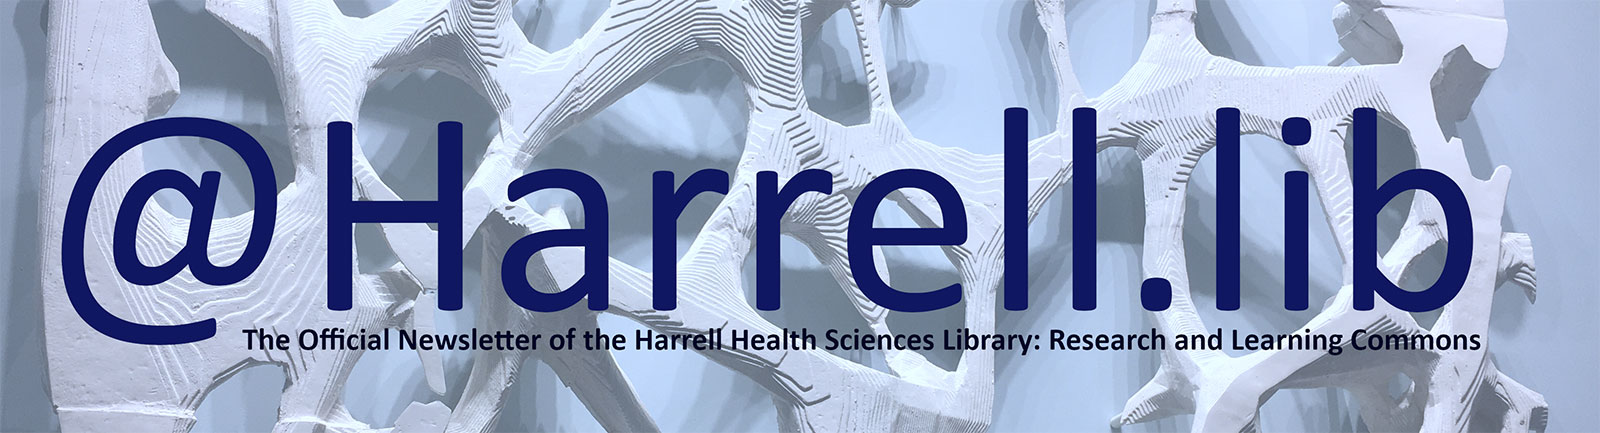 An image says @Harrell.lib: The Official Newsletter of the Harrell Health Sciences Library: A Research and Learning Commons.